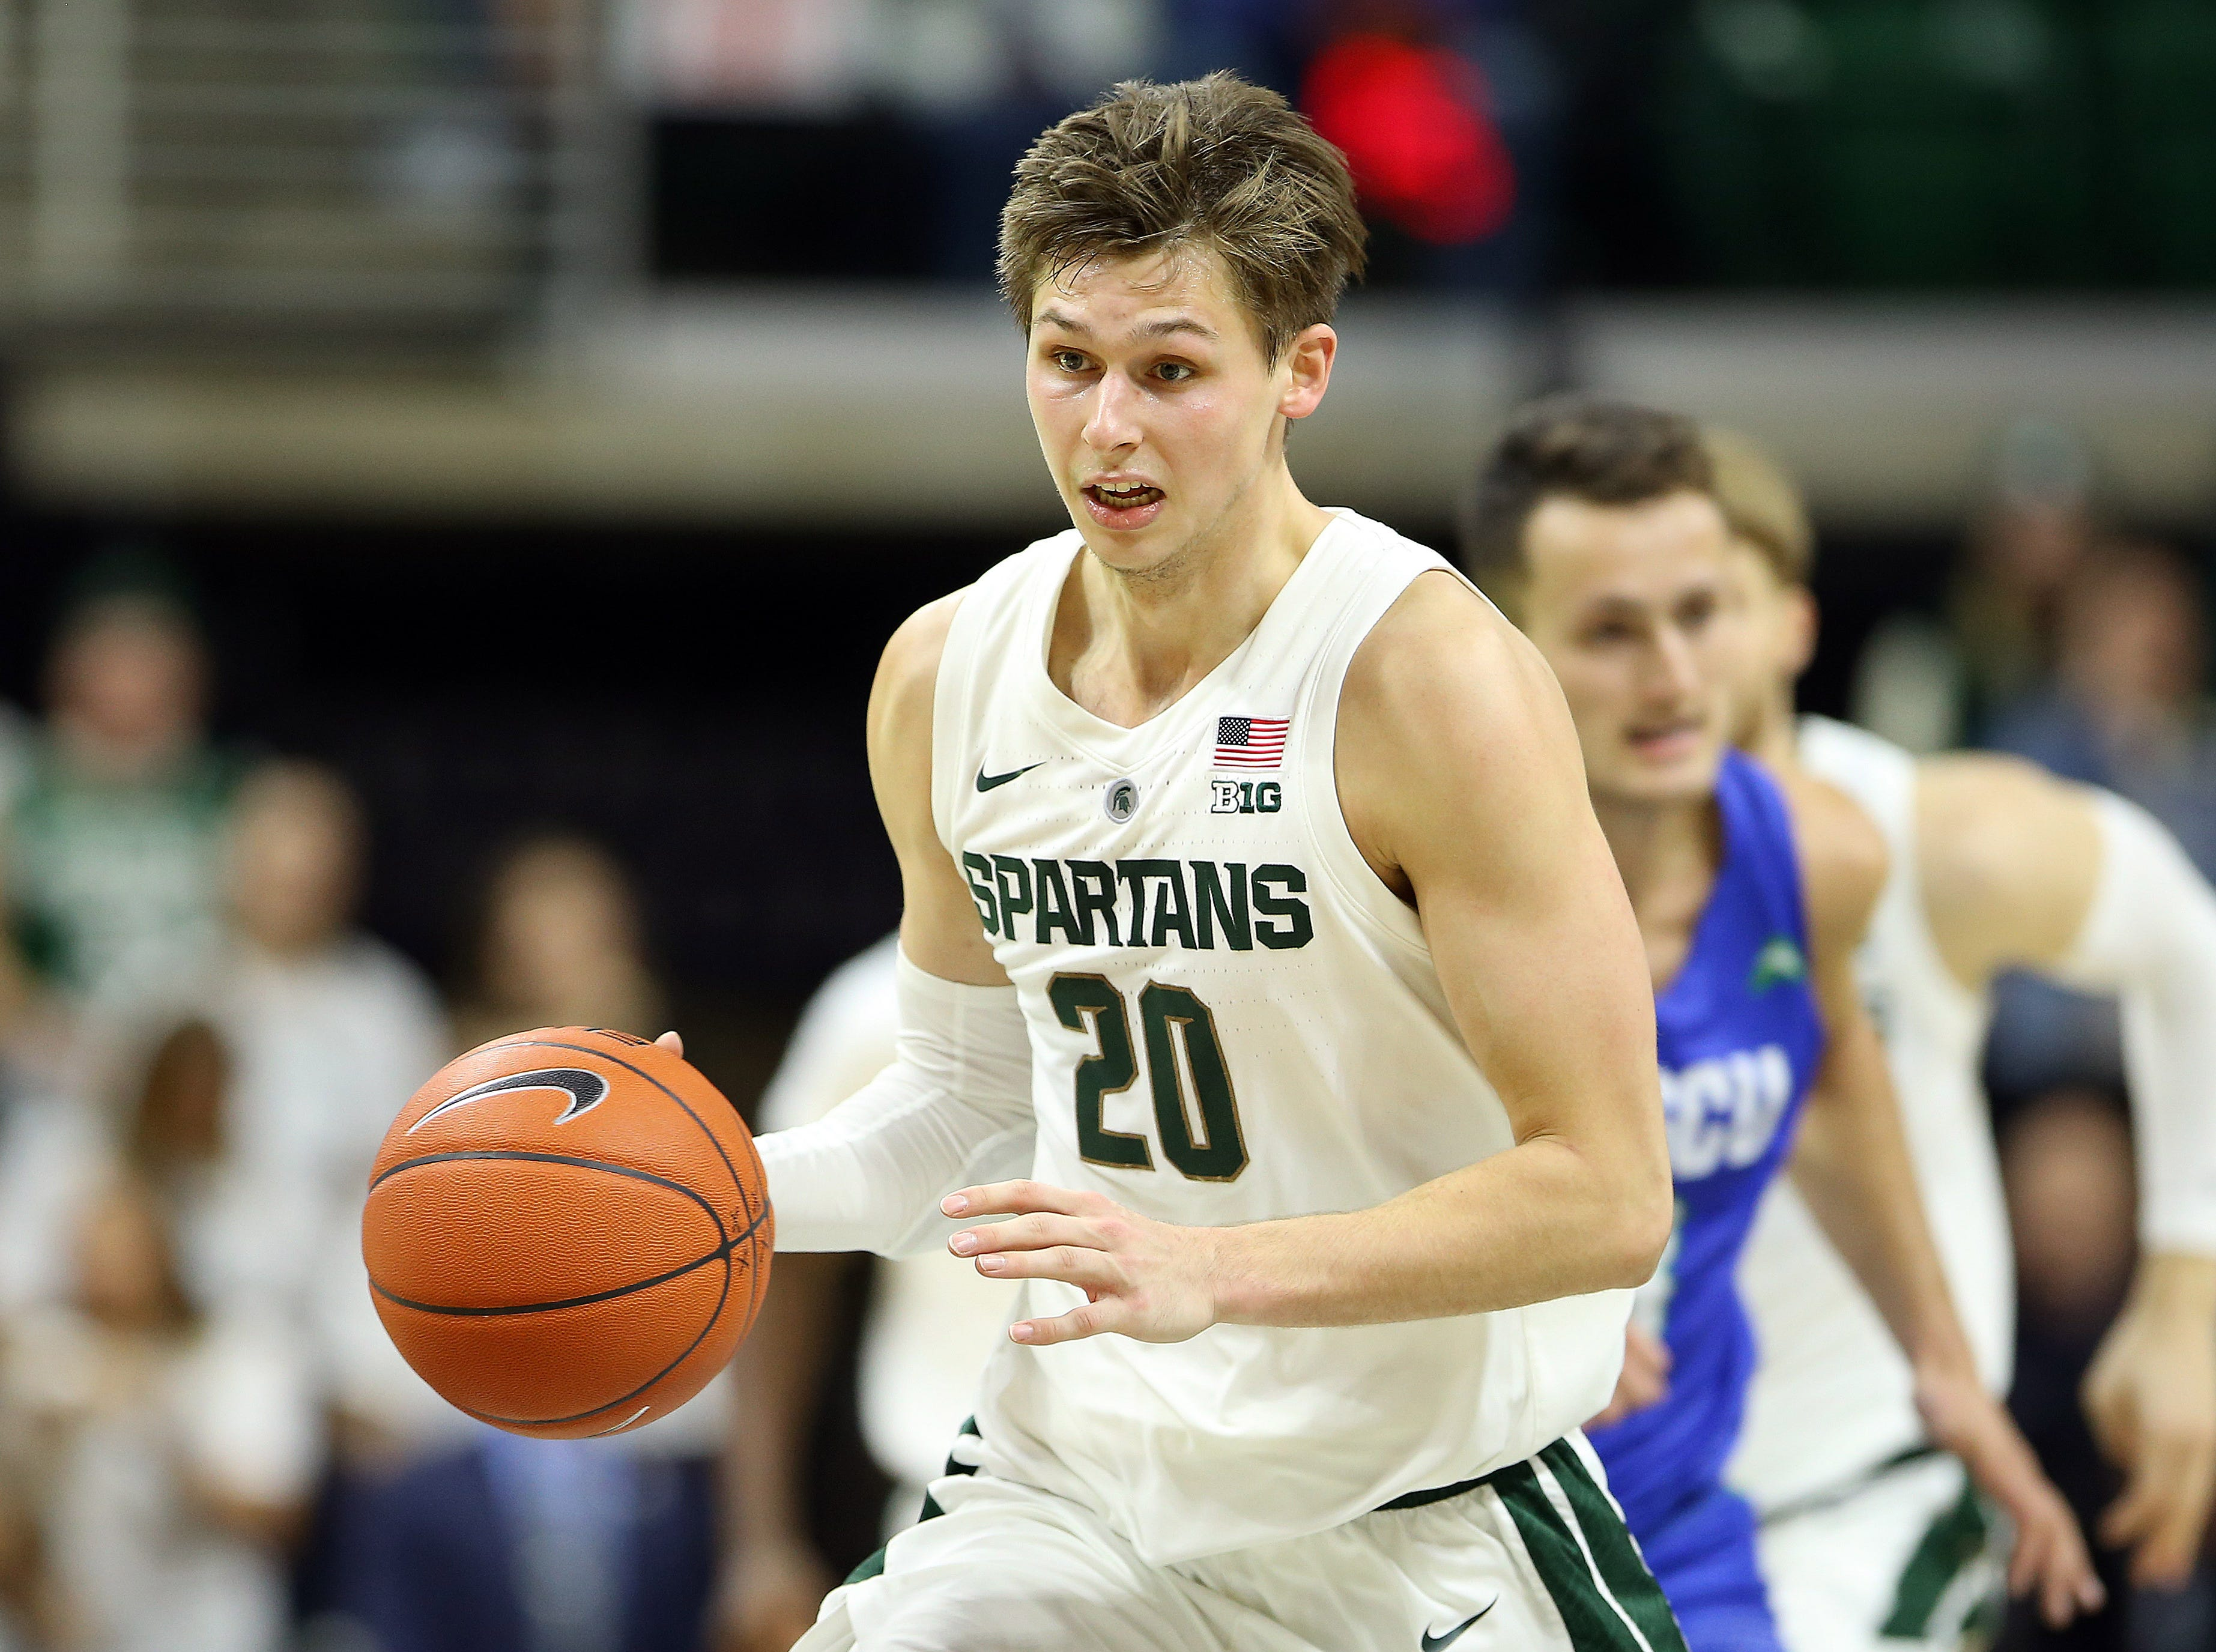 Nov 11, 2018; East Lansing, MI, USA; Michigan State Spartans guard Matt McQuaid (20) brings the ball up court against the Florida Gulf Coast Eagles during the second half of a game at the Breslin Center. Mandatory Credit: Mike Carter-USA TODAY Sports